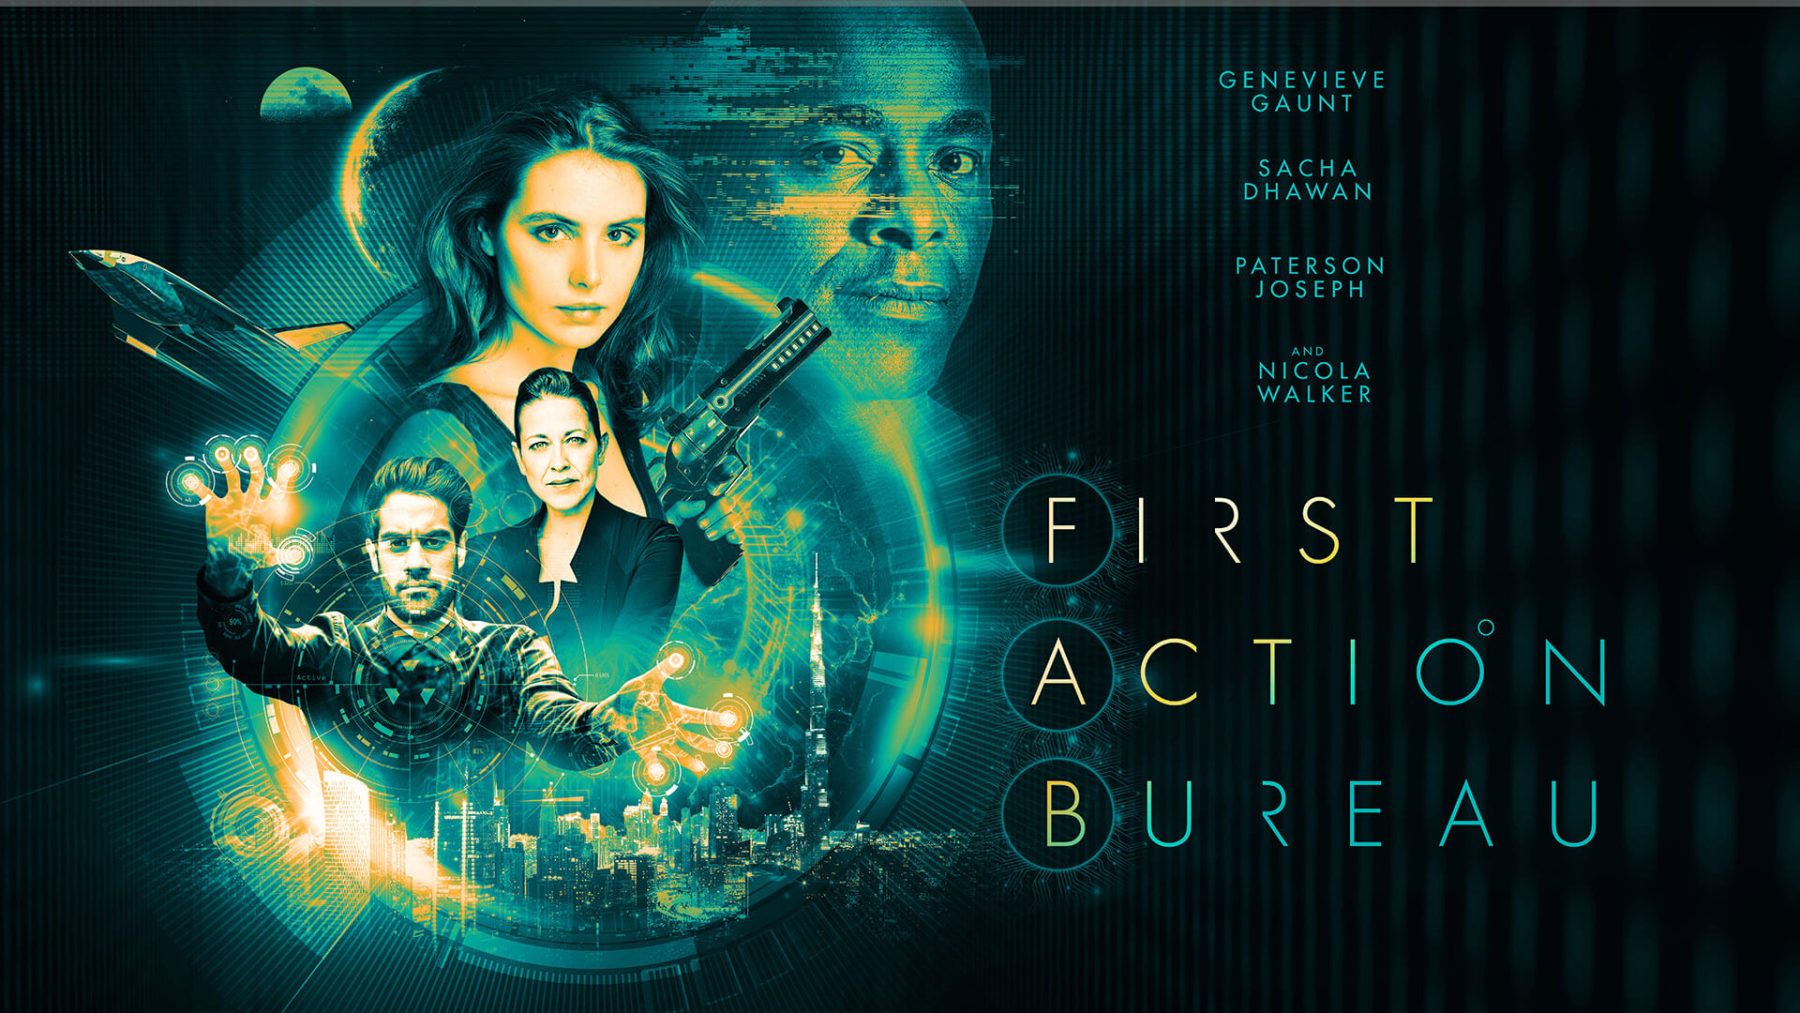 First Action Bureau series 1 poster featuring Genevieve Gaunt, paterson Joseph and Sacha Dhawan